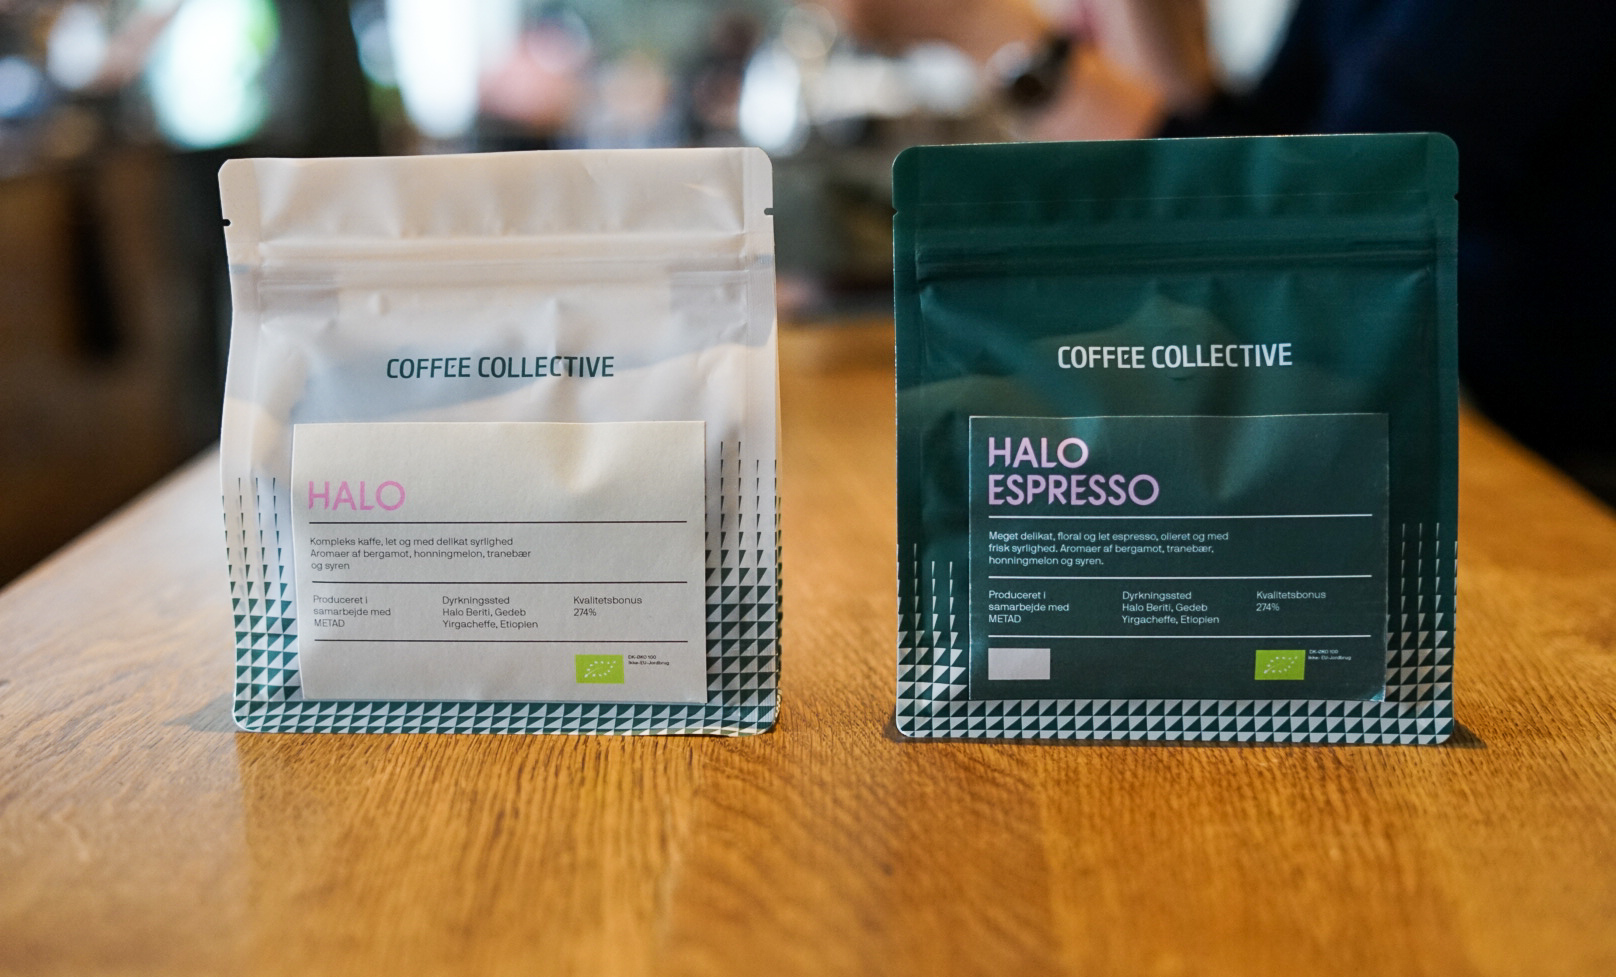 Halo coffee